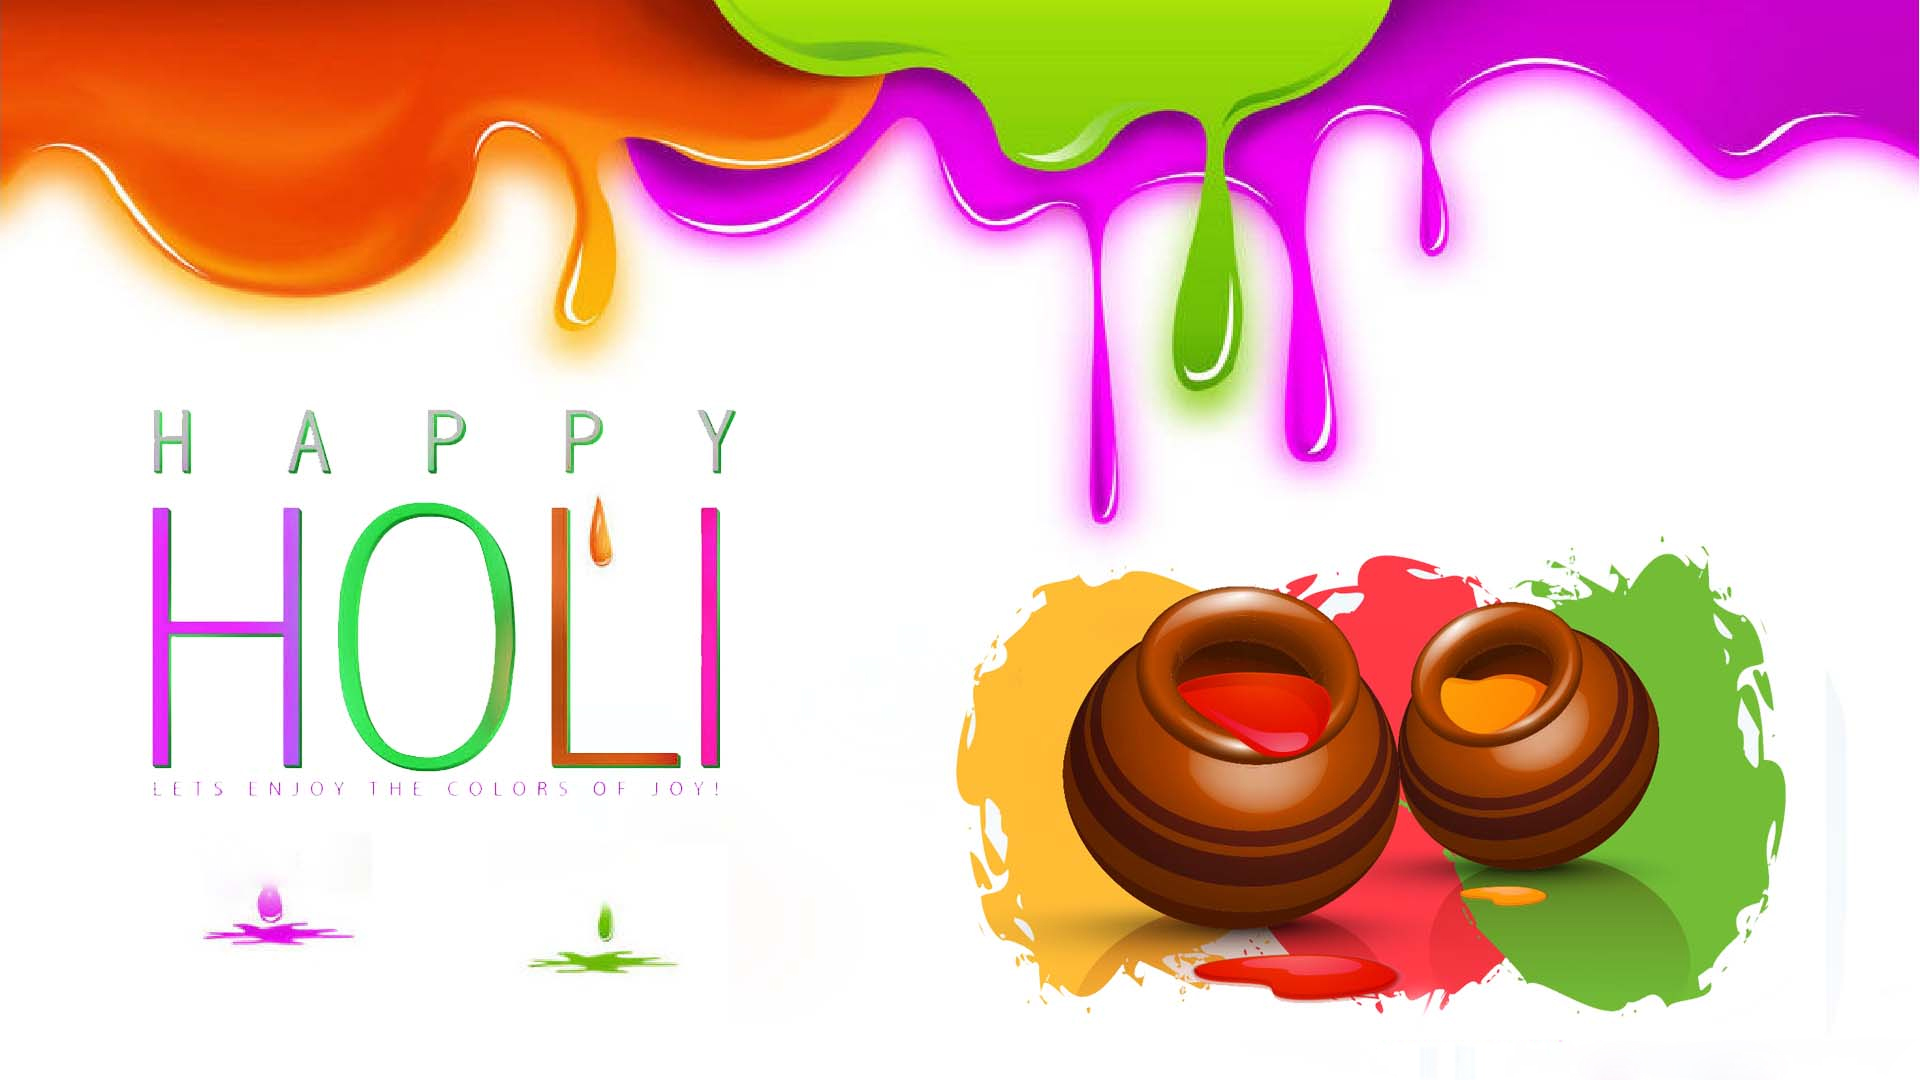 Holi Wallpapers Hd Backgrounds Images Pics Photos Free Download